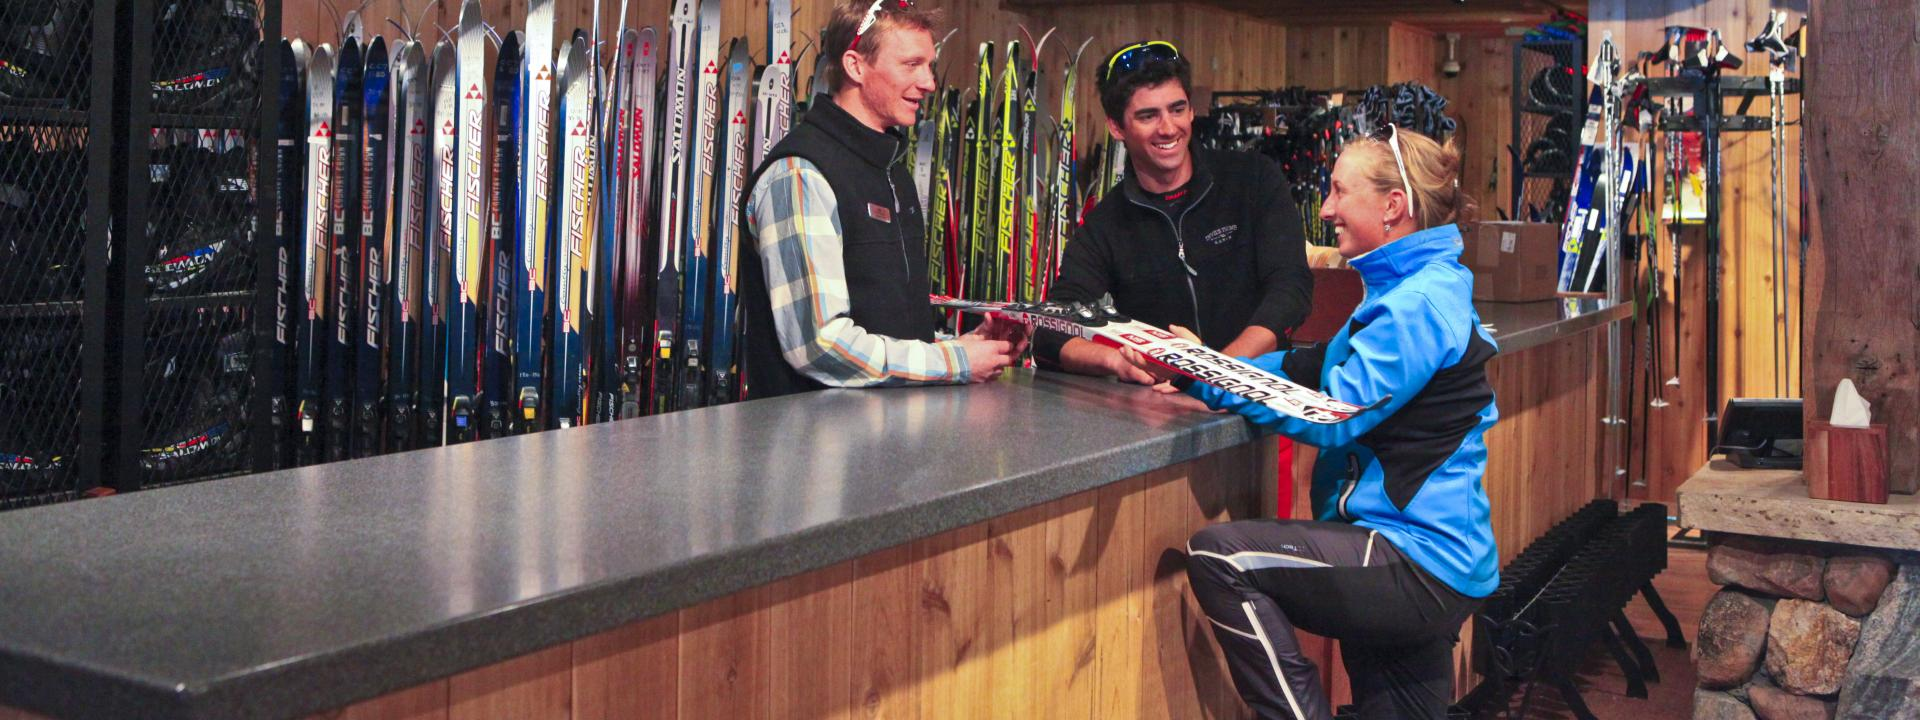 Cross Country Ski Rentals in Winter Park, Colorado